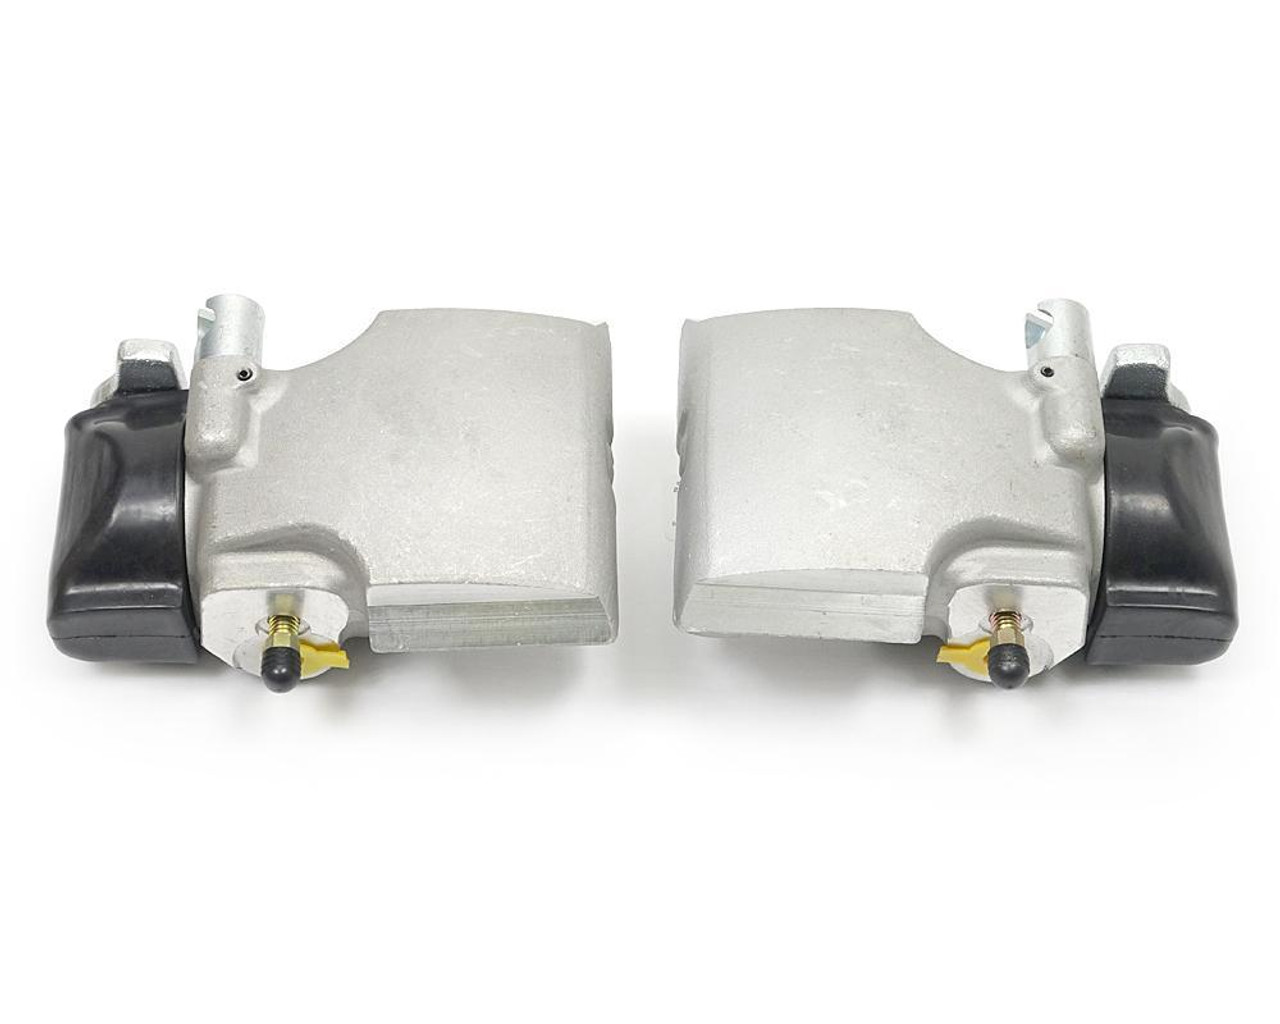 Rear Brake Caliper Pair - NEW - SAVE over 10%